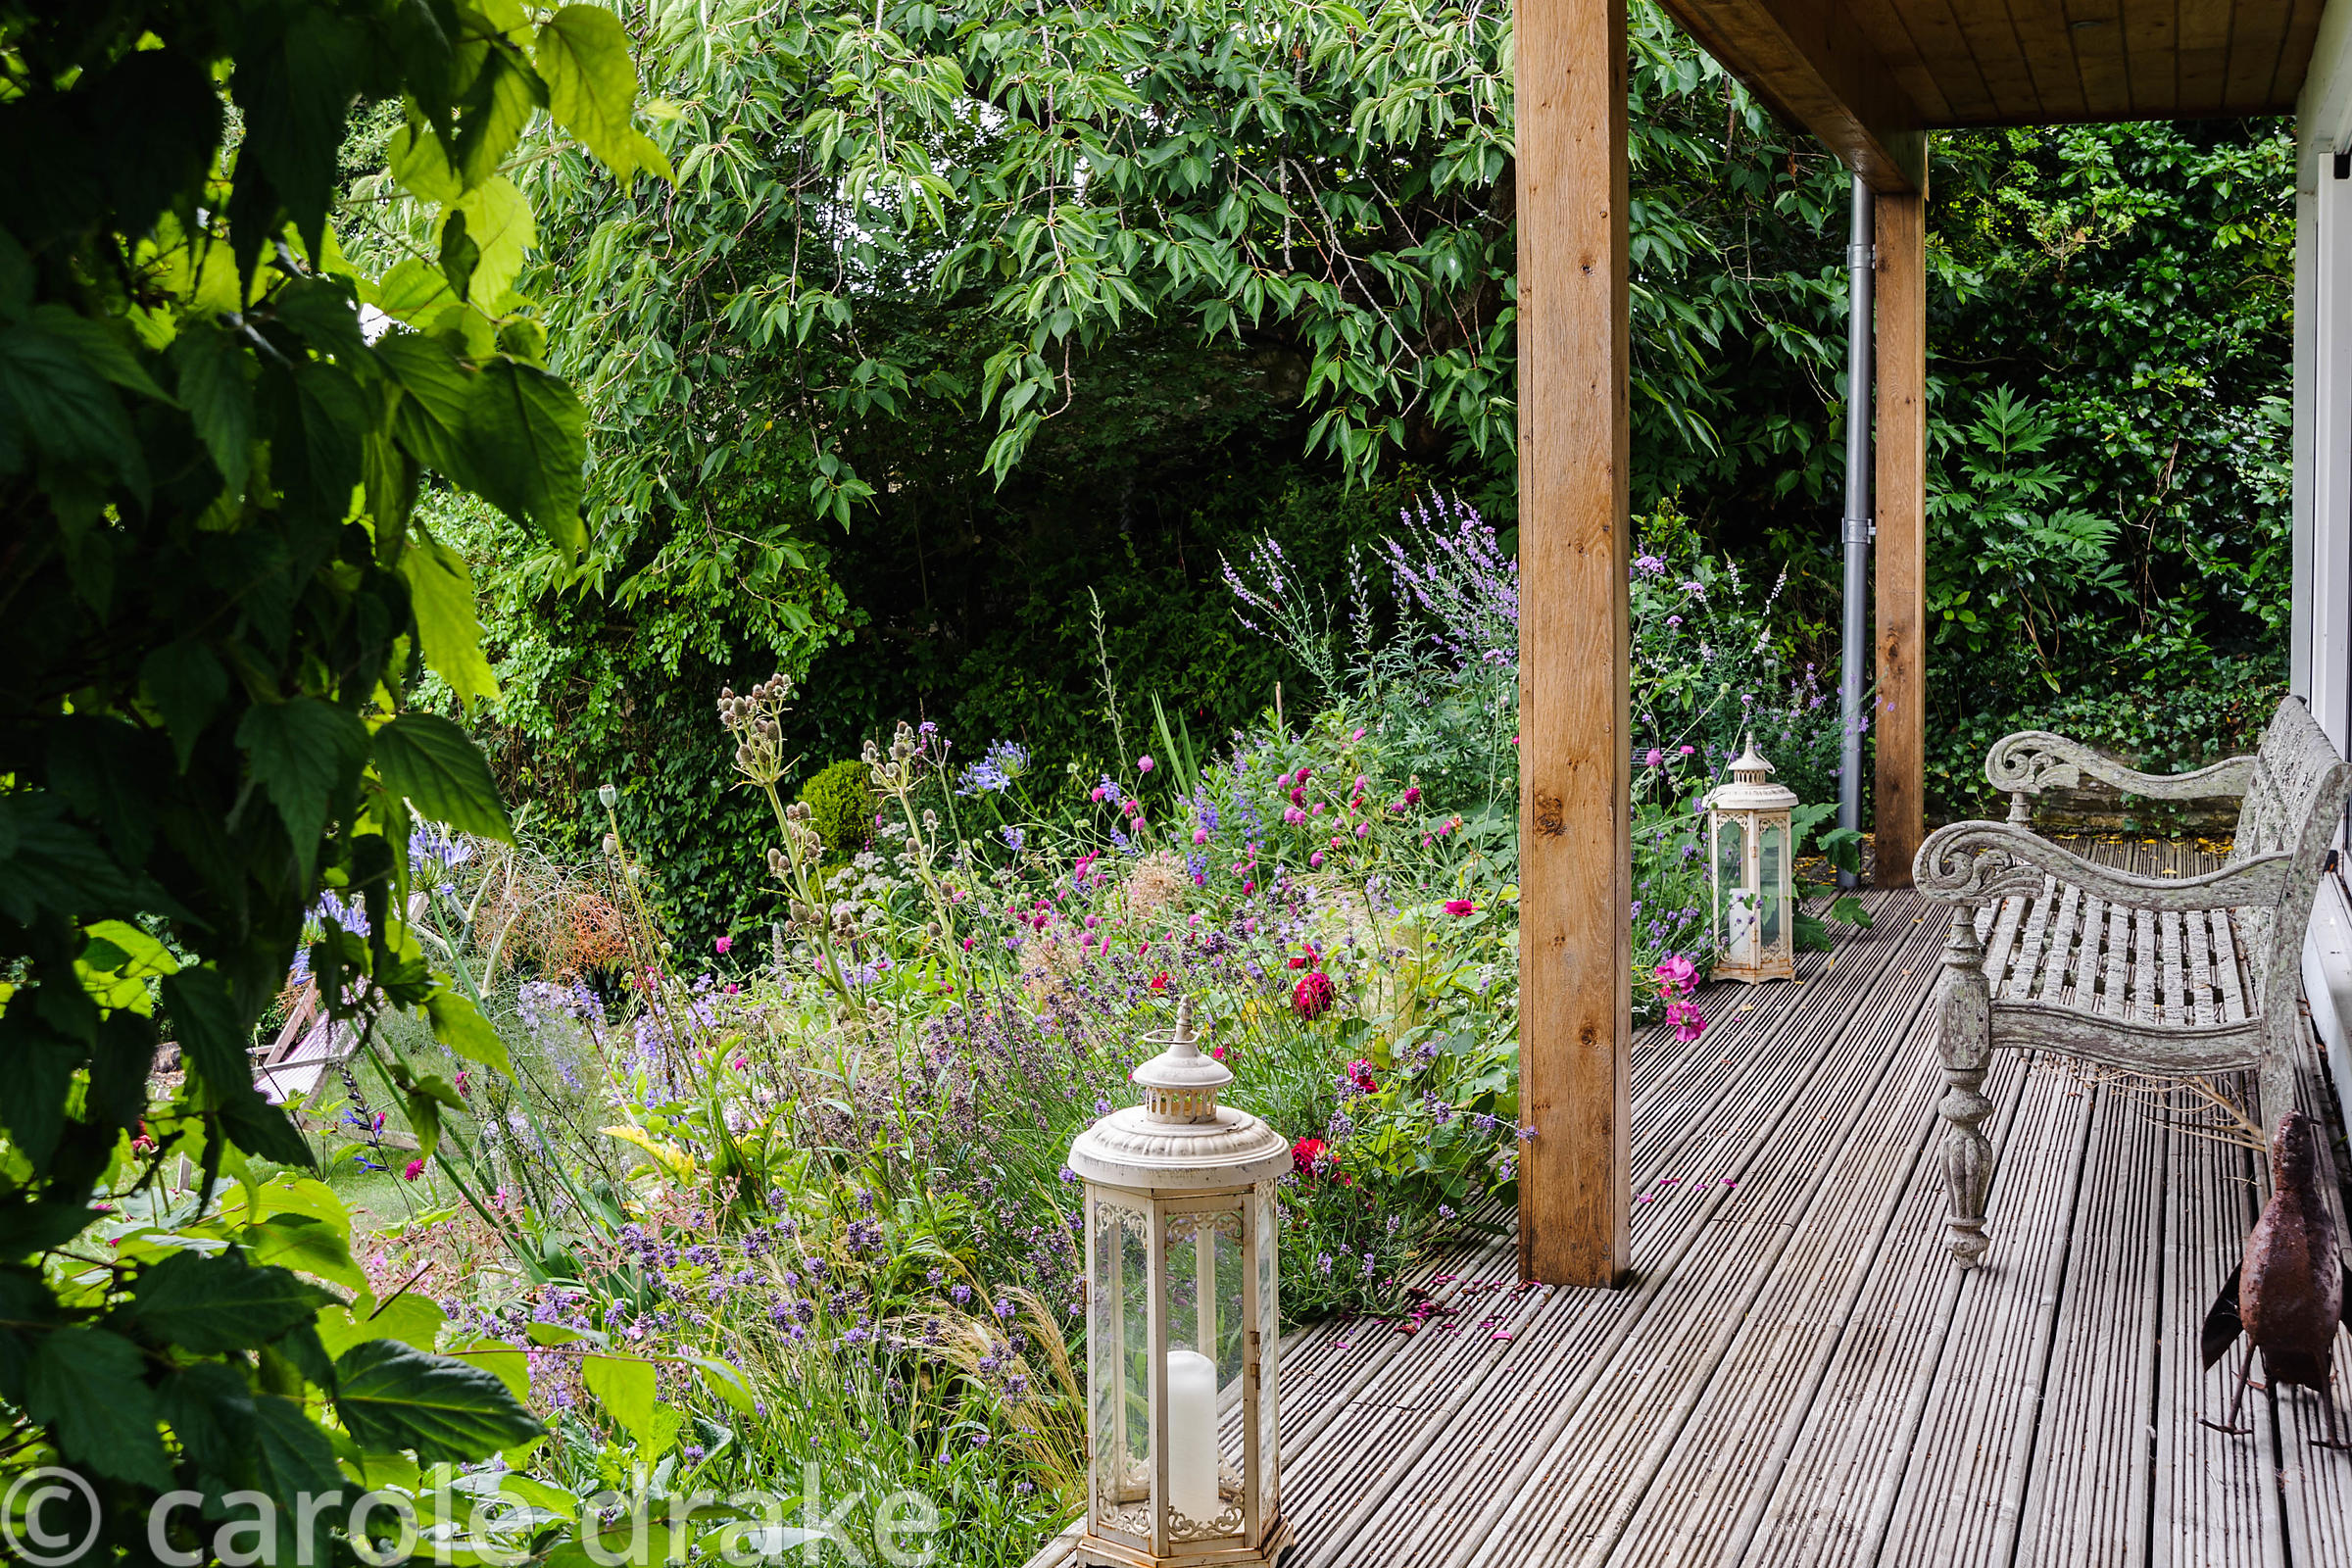 Deck with lanterns and bench edged with border full of herbaceous planting in shades of pink, blue and purple including knaut...